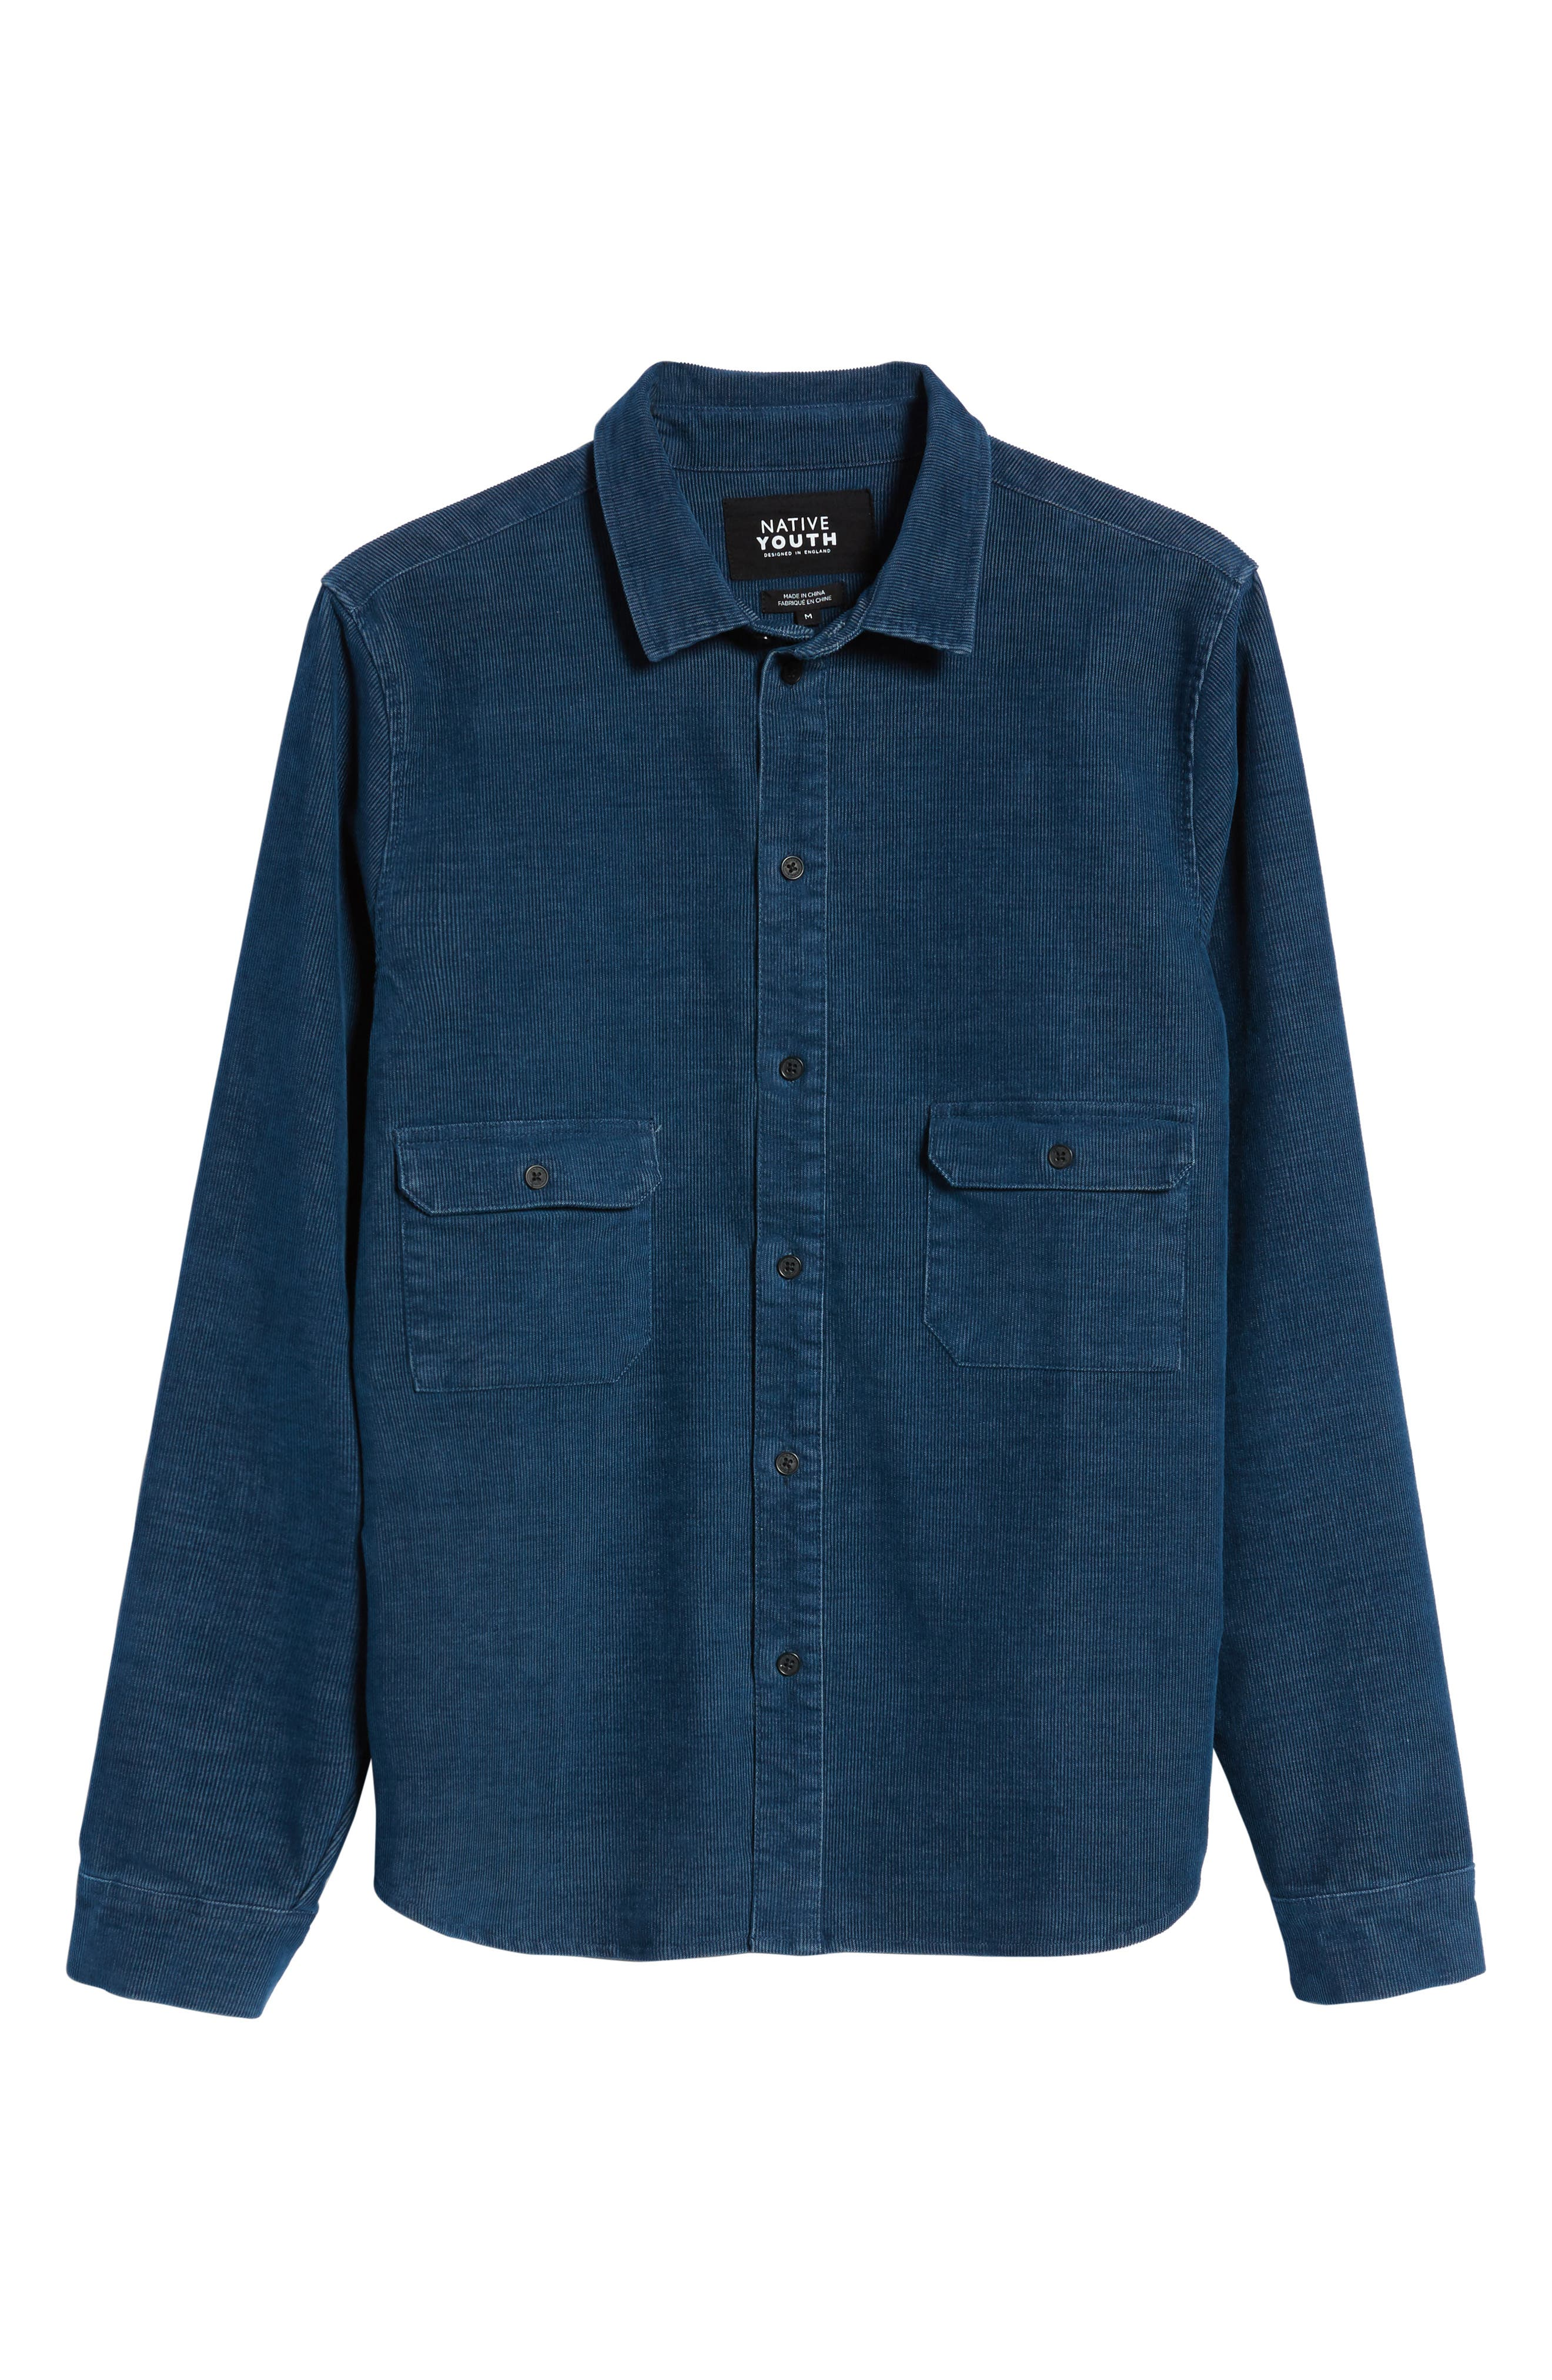 Cheriton Corduroy Shirt,                             Alternate thumbnail 6, color,                             Blue